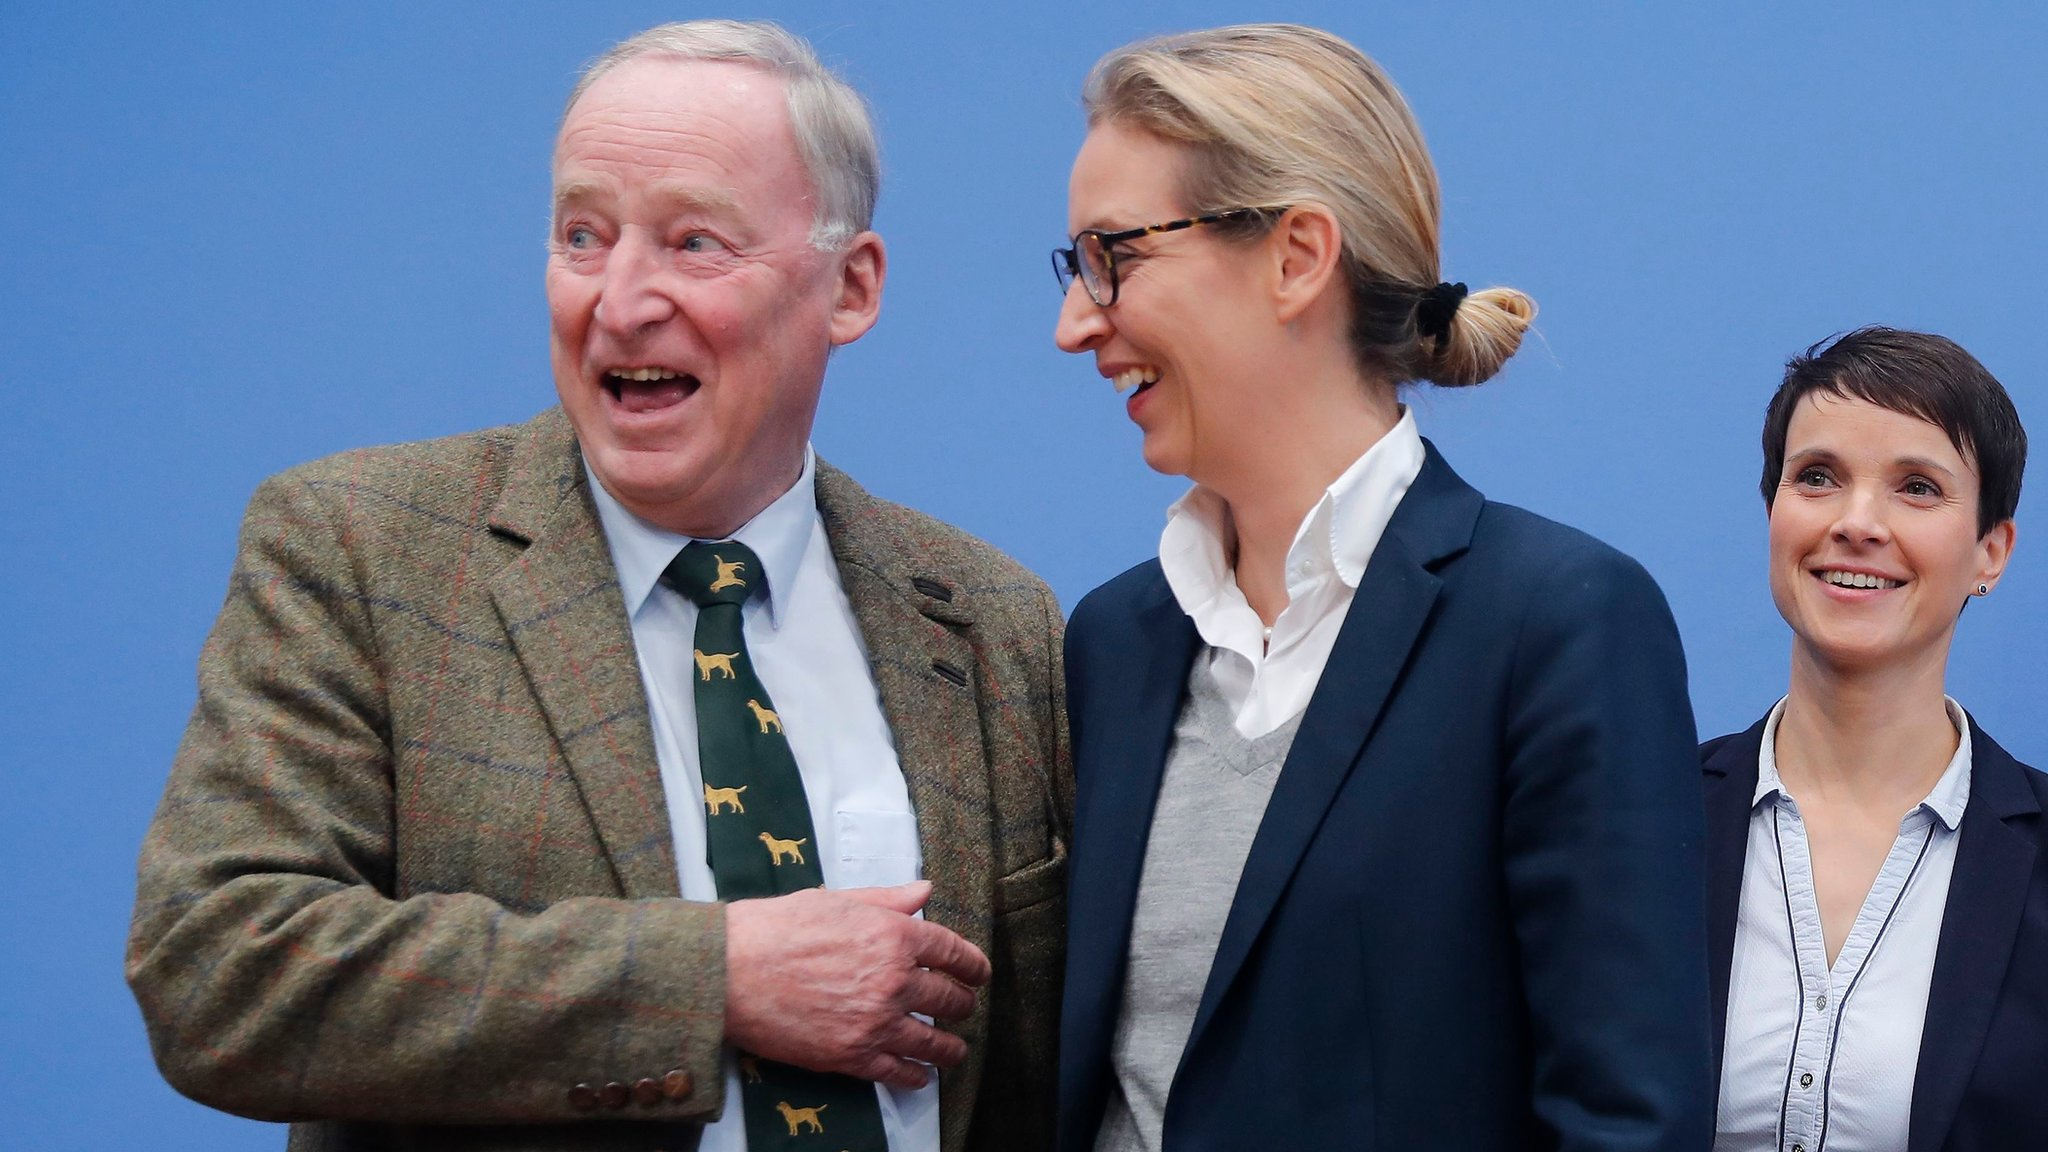 German nationalists to fight 'foreign invasion'